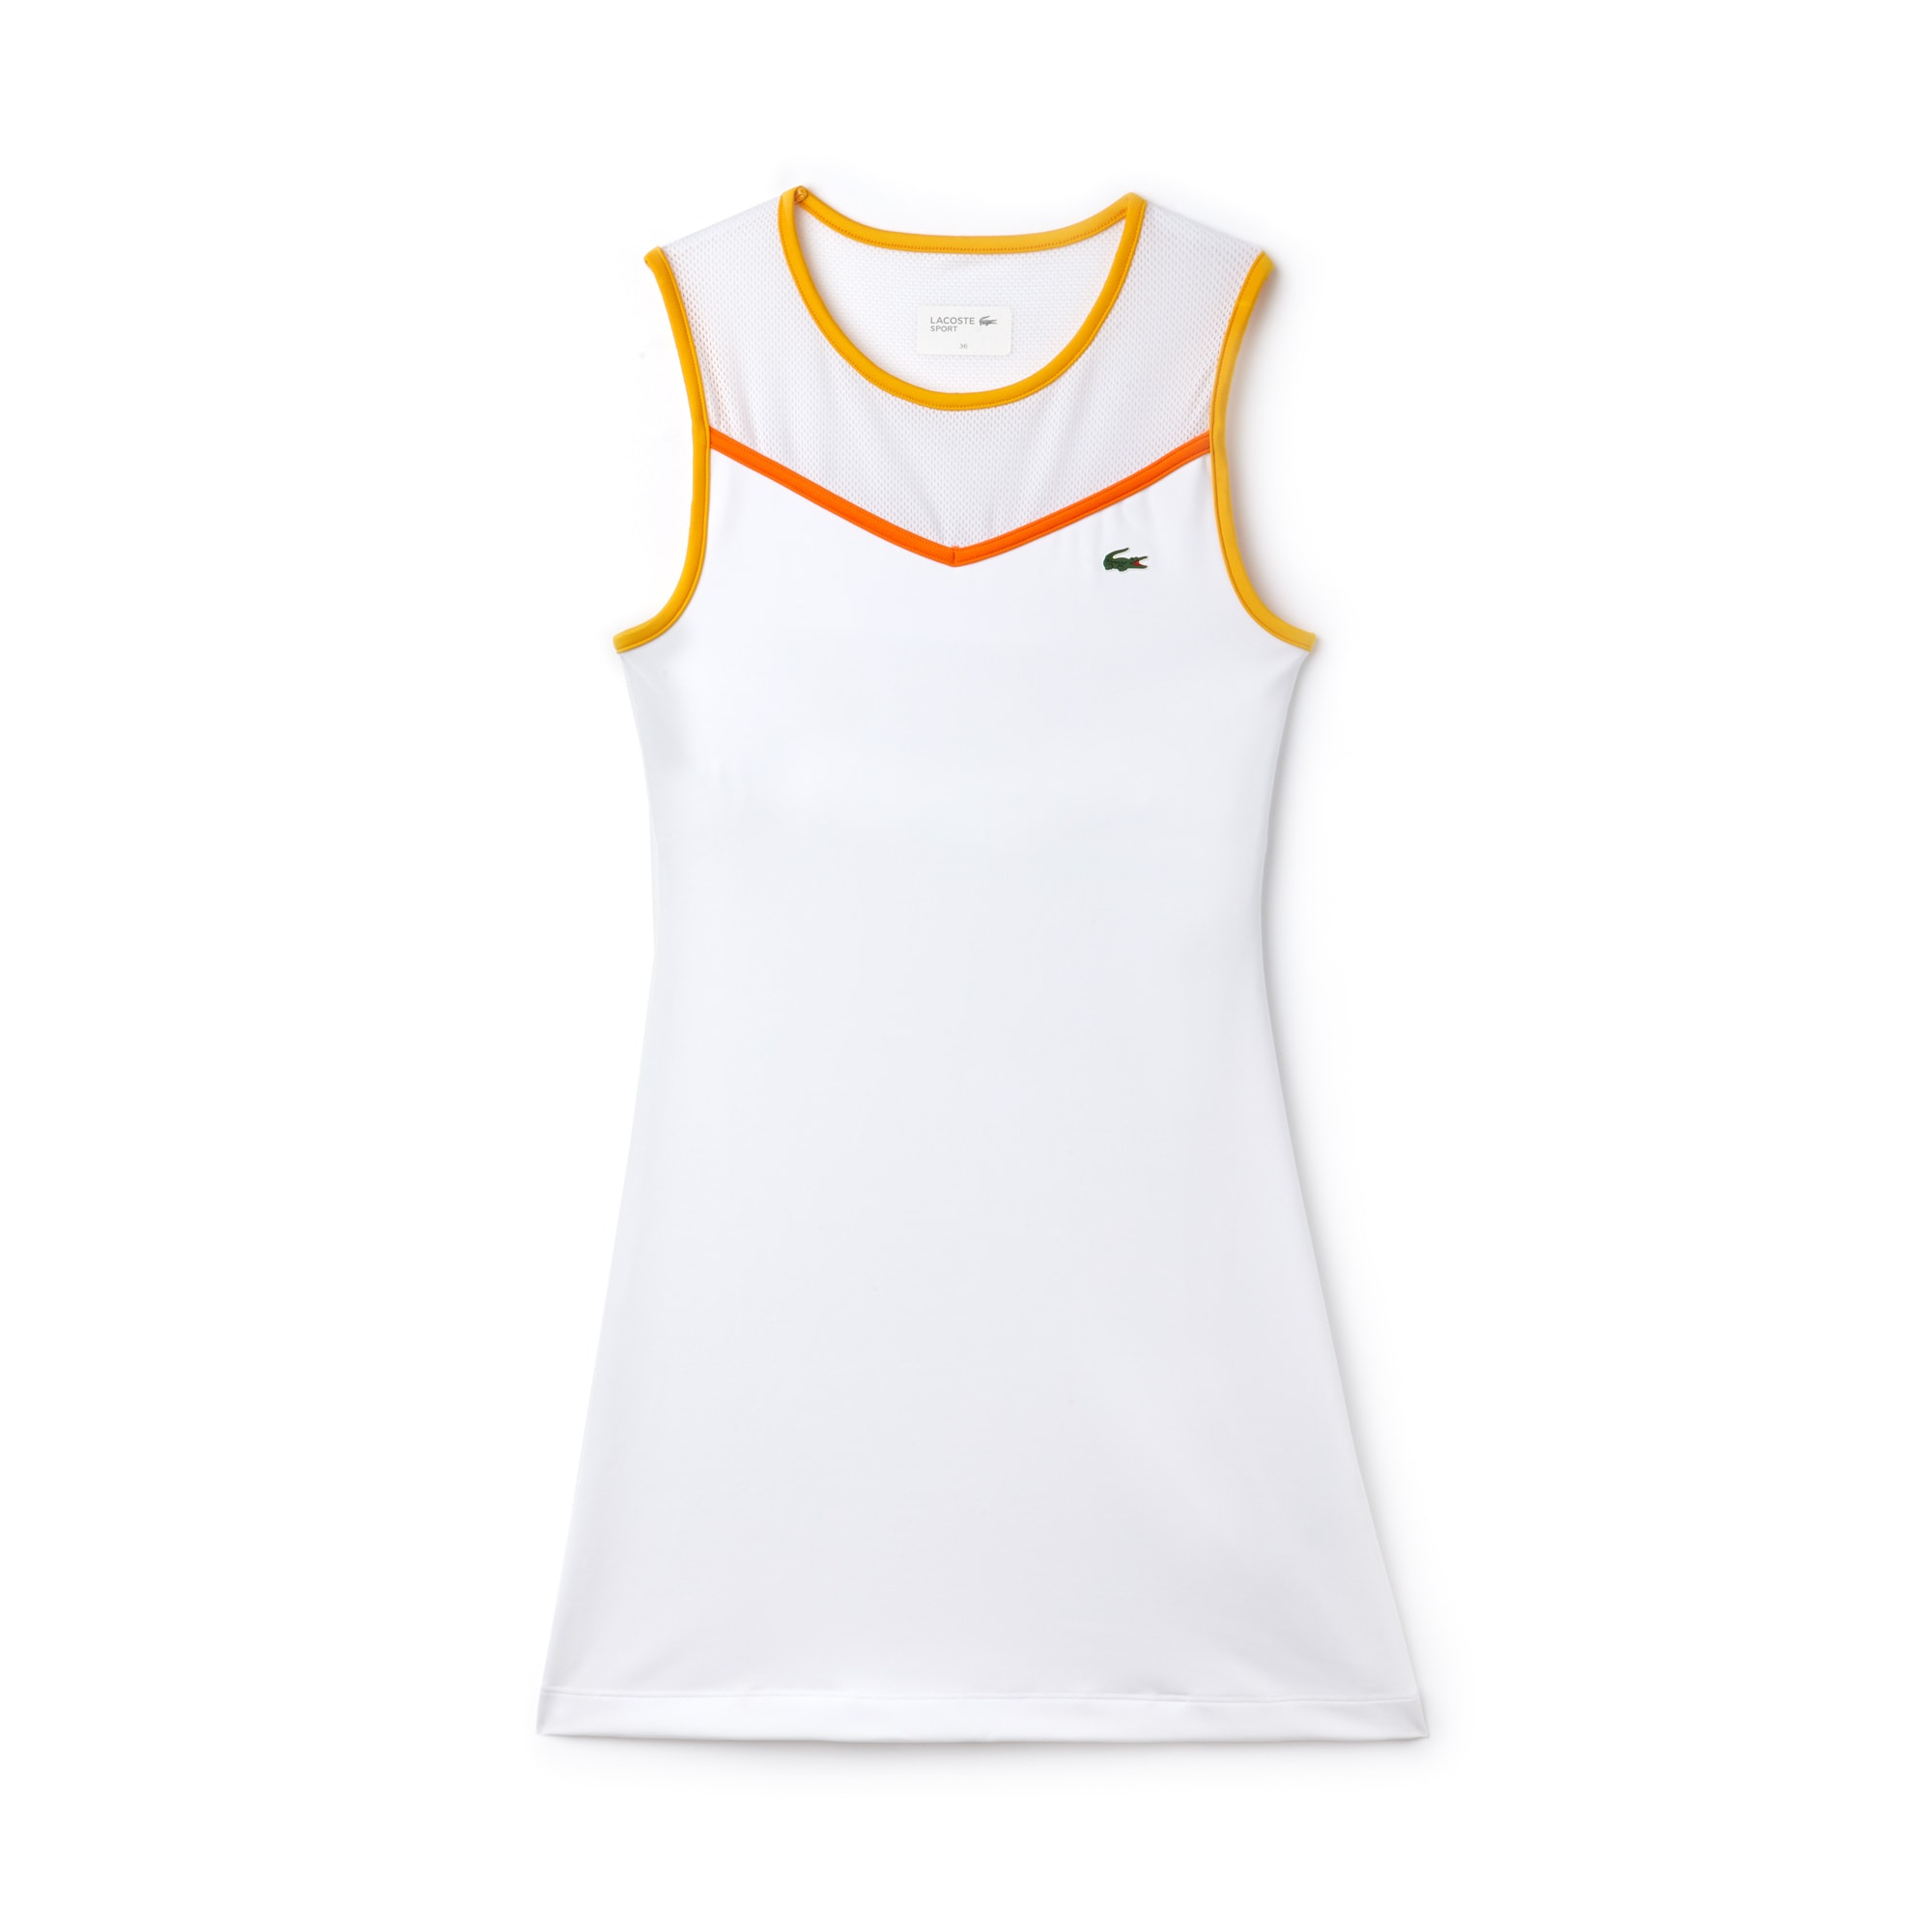 Women's SPORT Racerback Tennis Dress